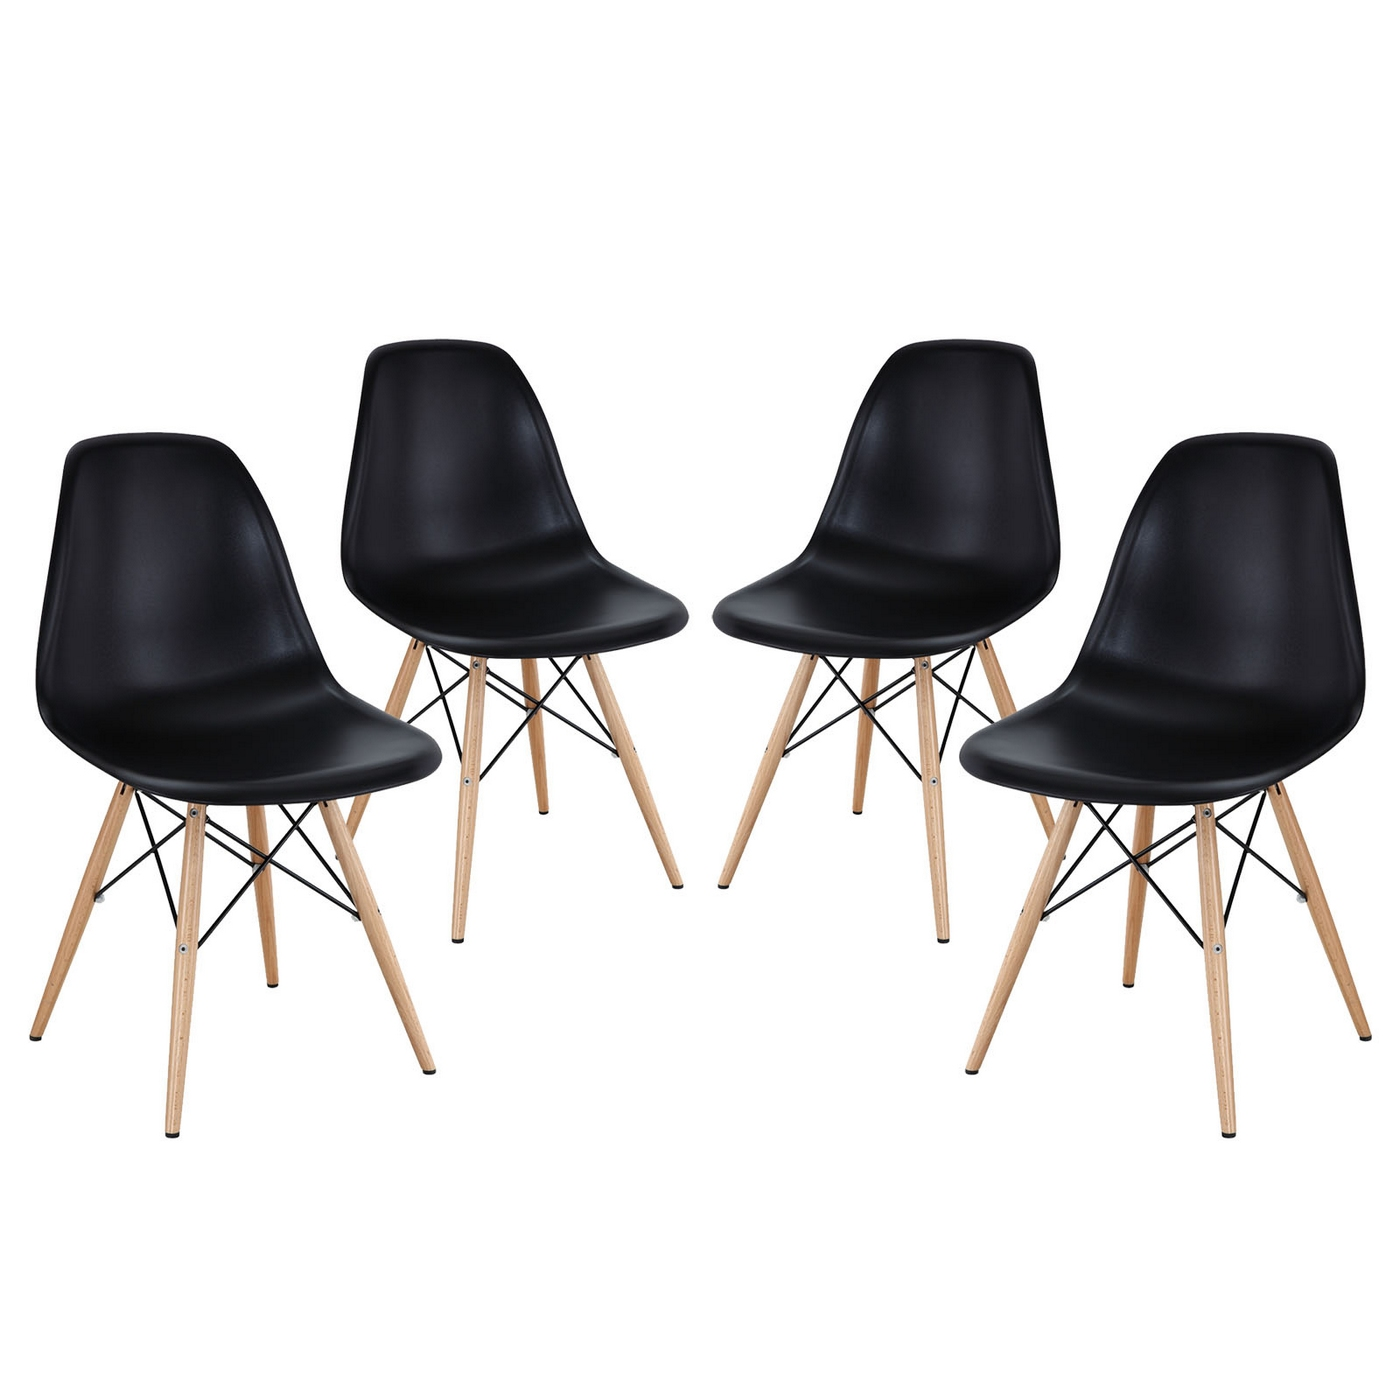 Pyramid Modern Molded Plastic Dining Side Chairs With